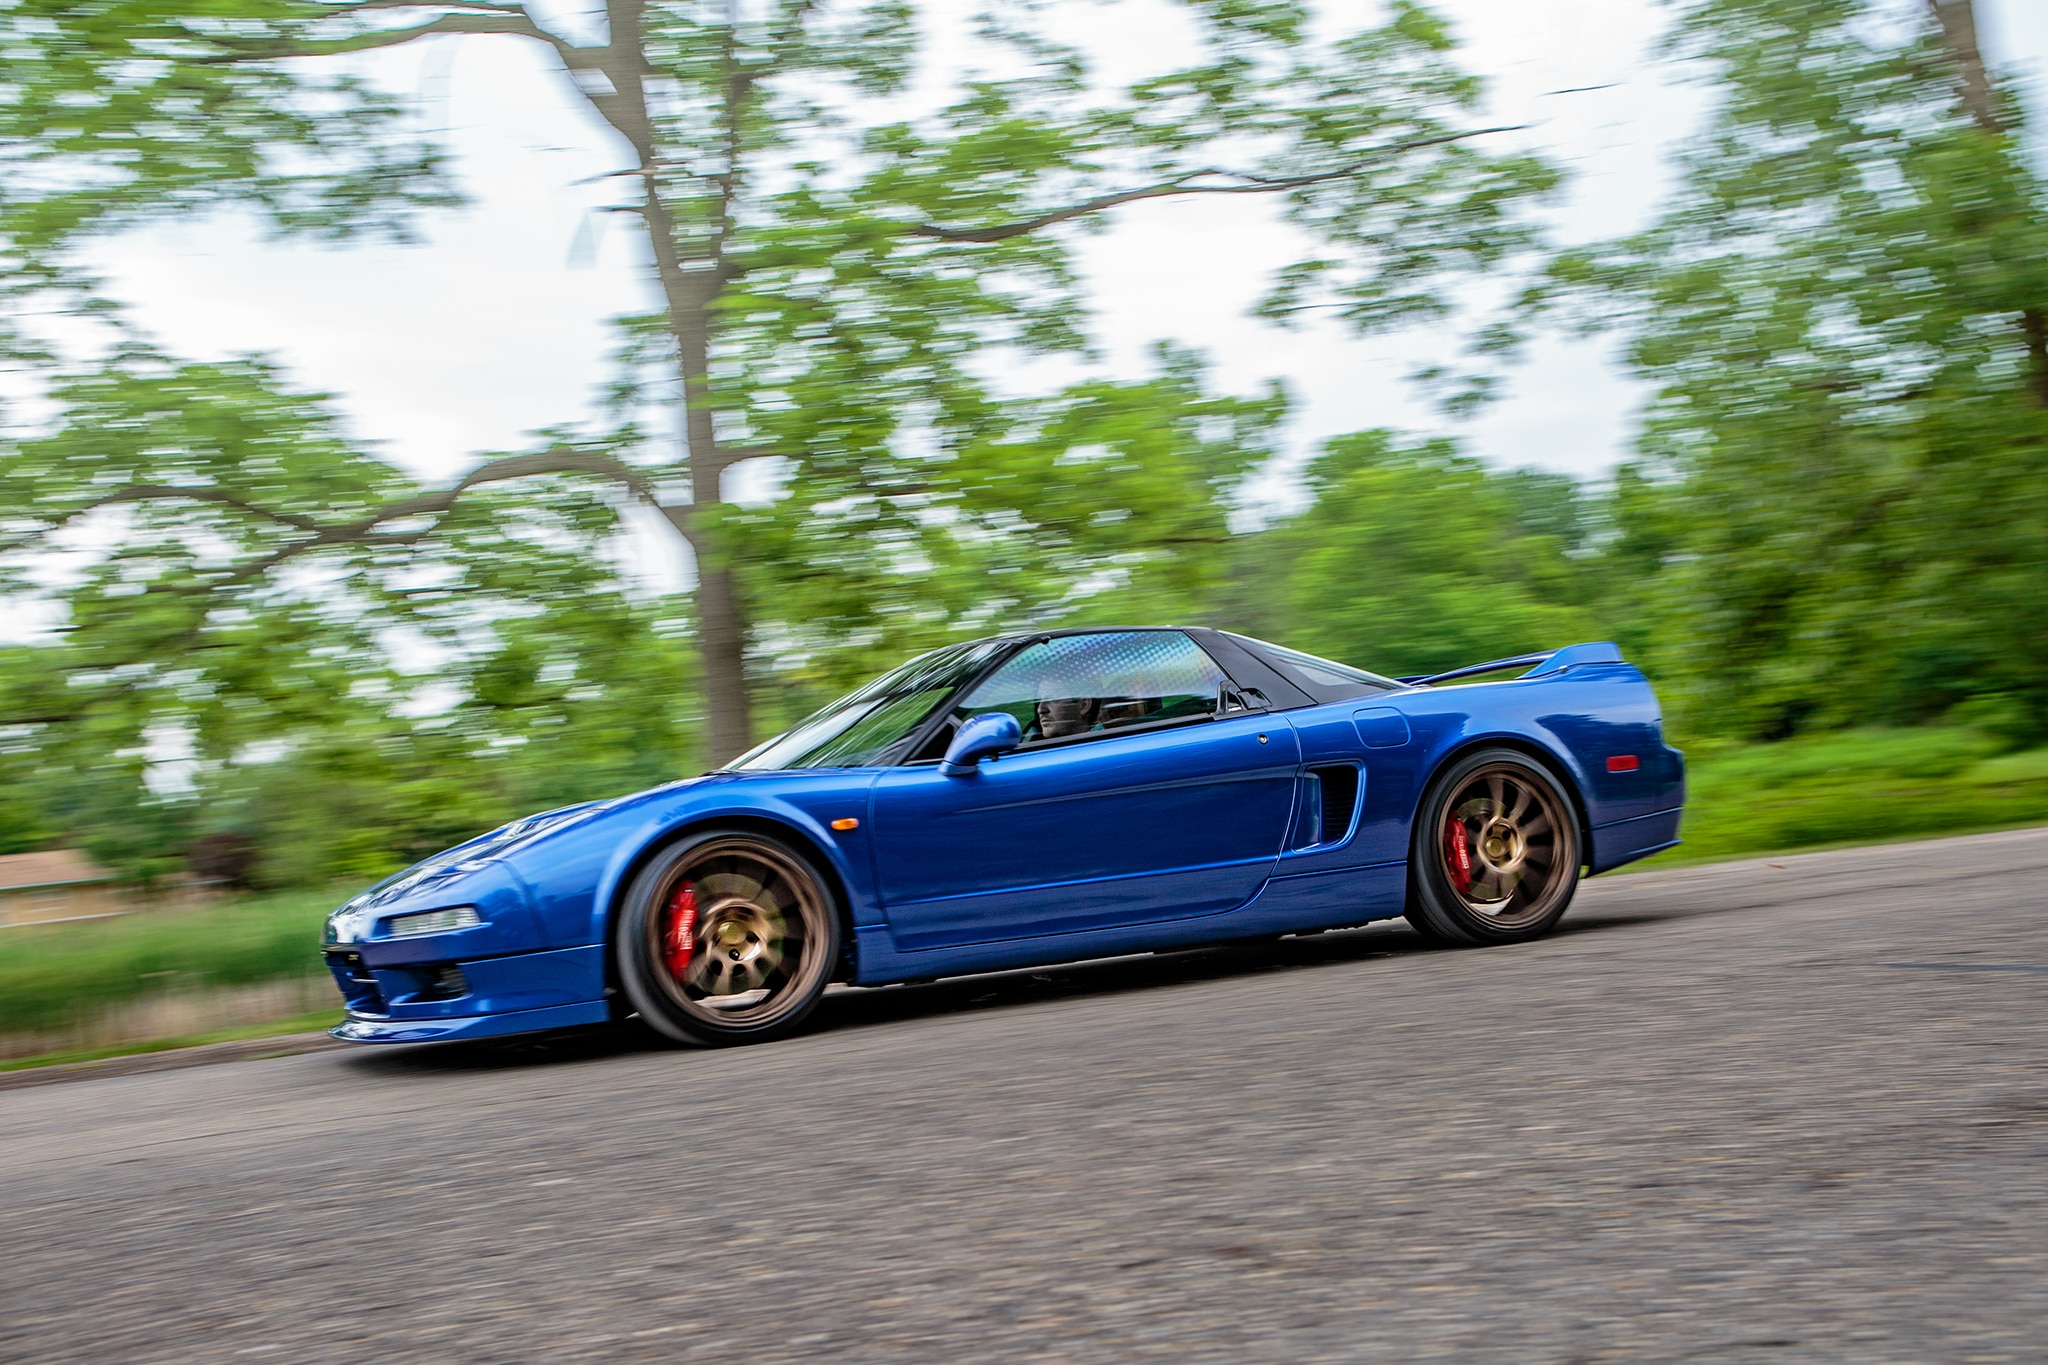 Outside of Time: Driving the Clarion Builds 1991 Acura NSX